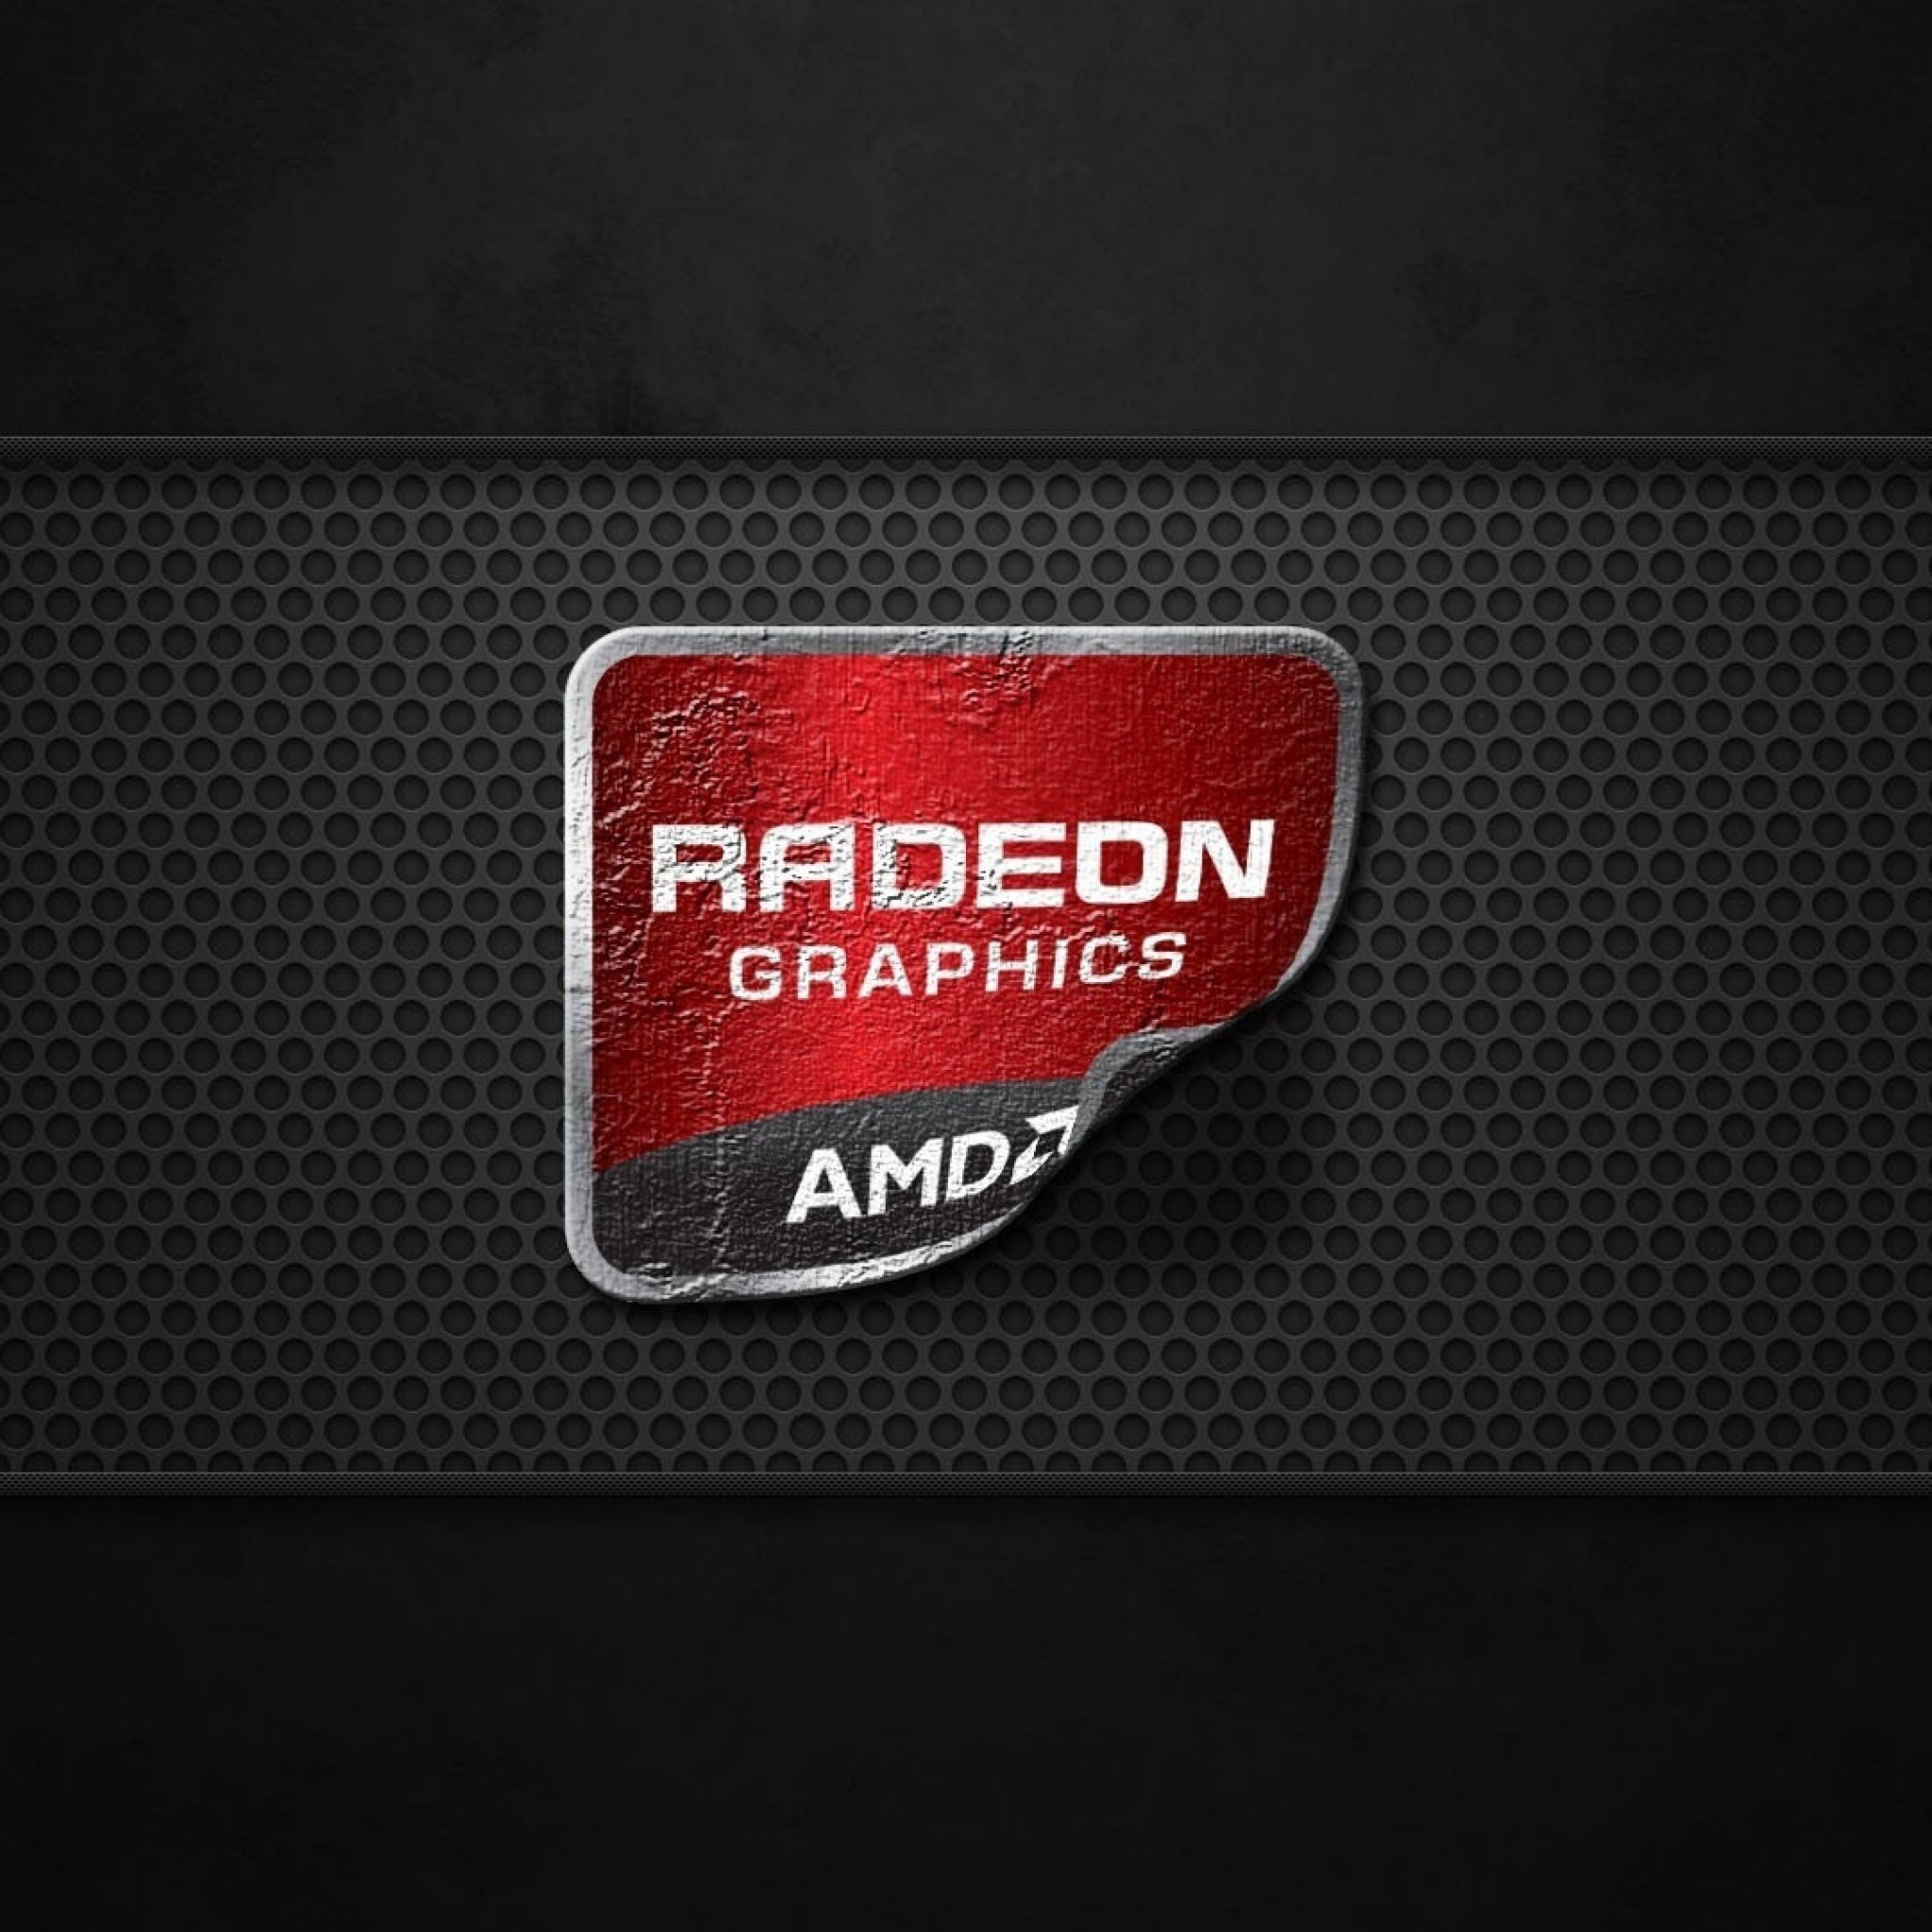 AMD Radeon Graphics Wallpaper for Google Nexus 9